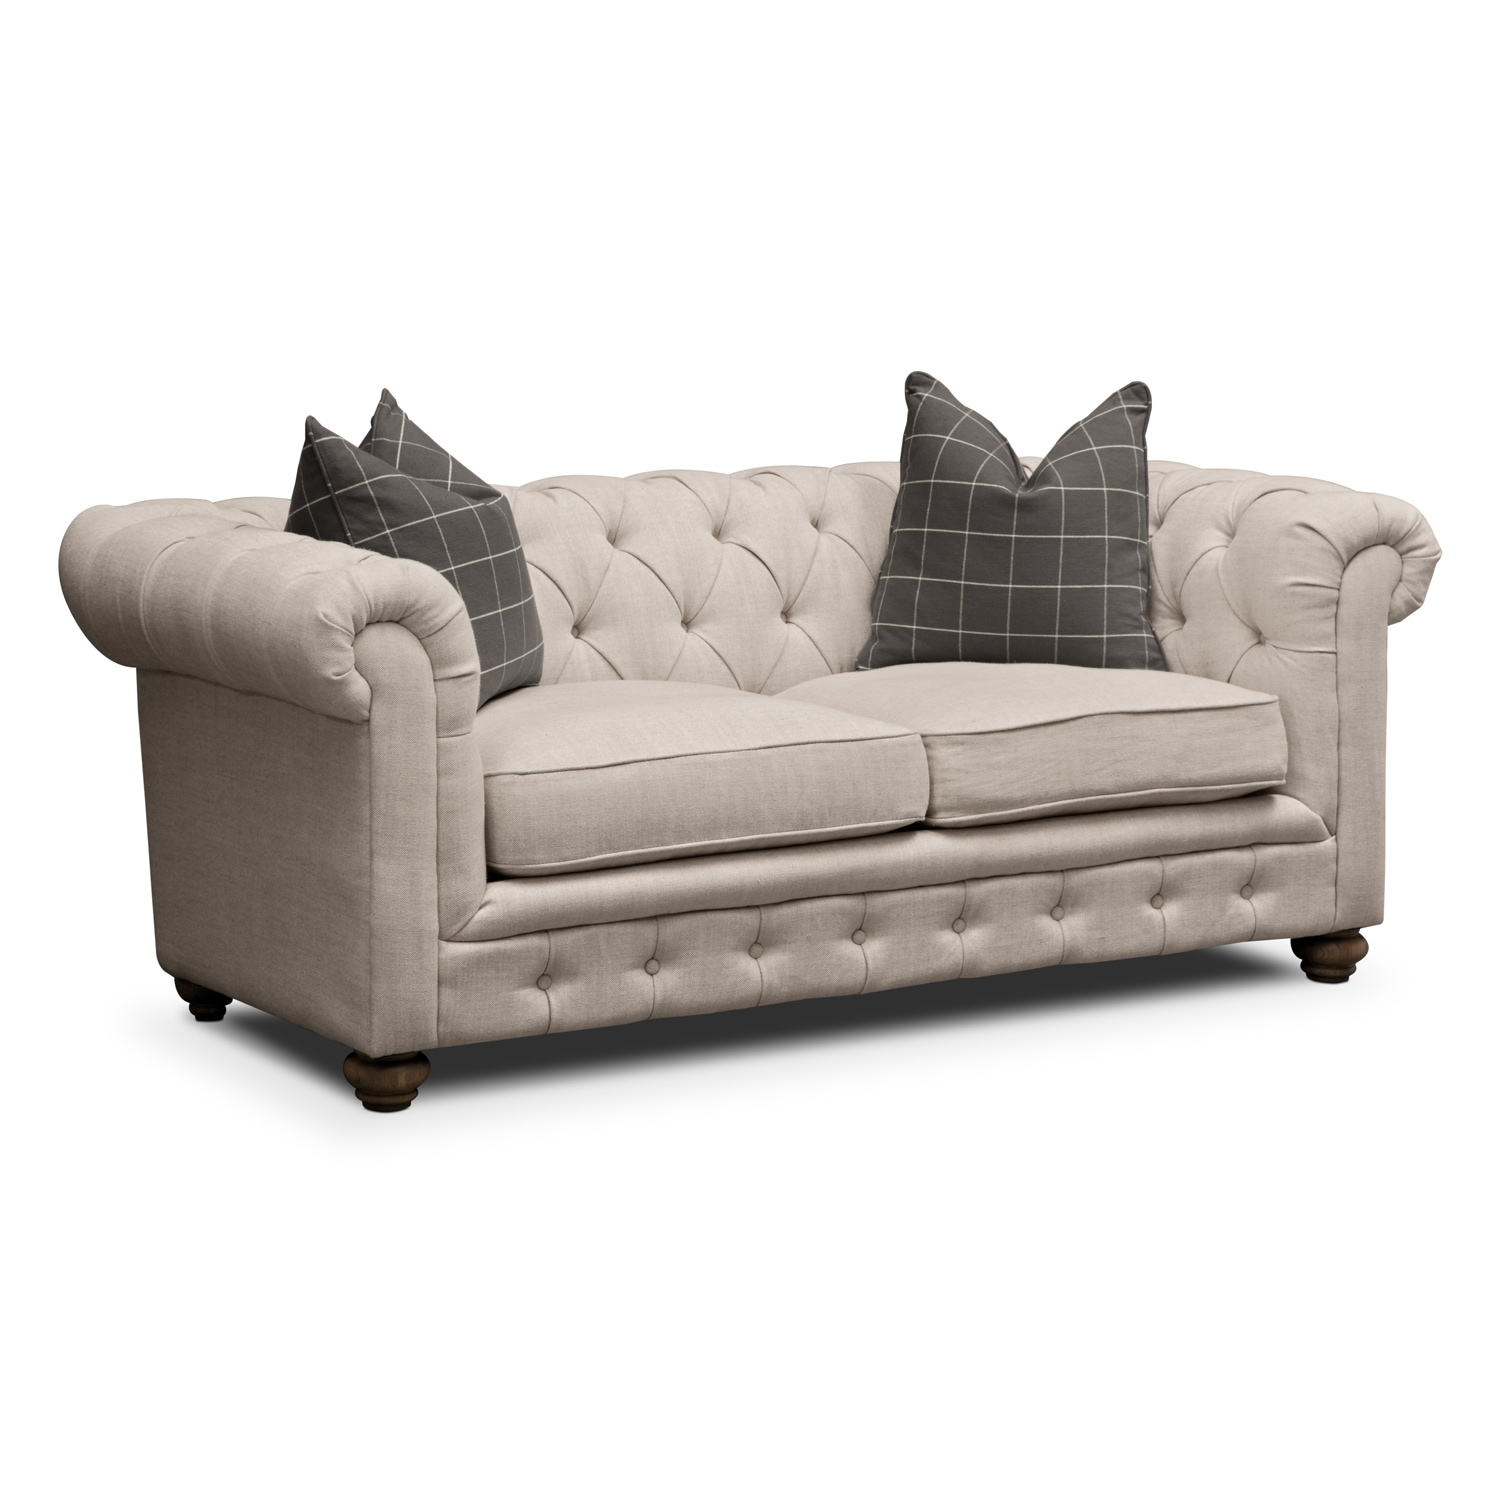 Madeline upholstery apartment sofa value city furniture for Sofa couch for sale